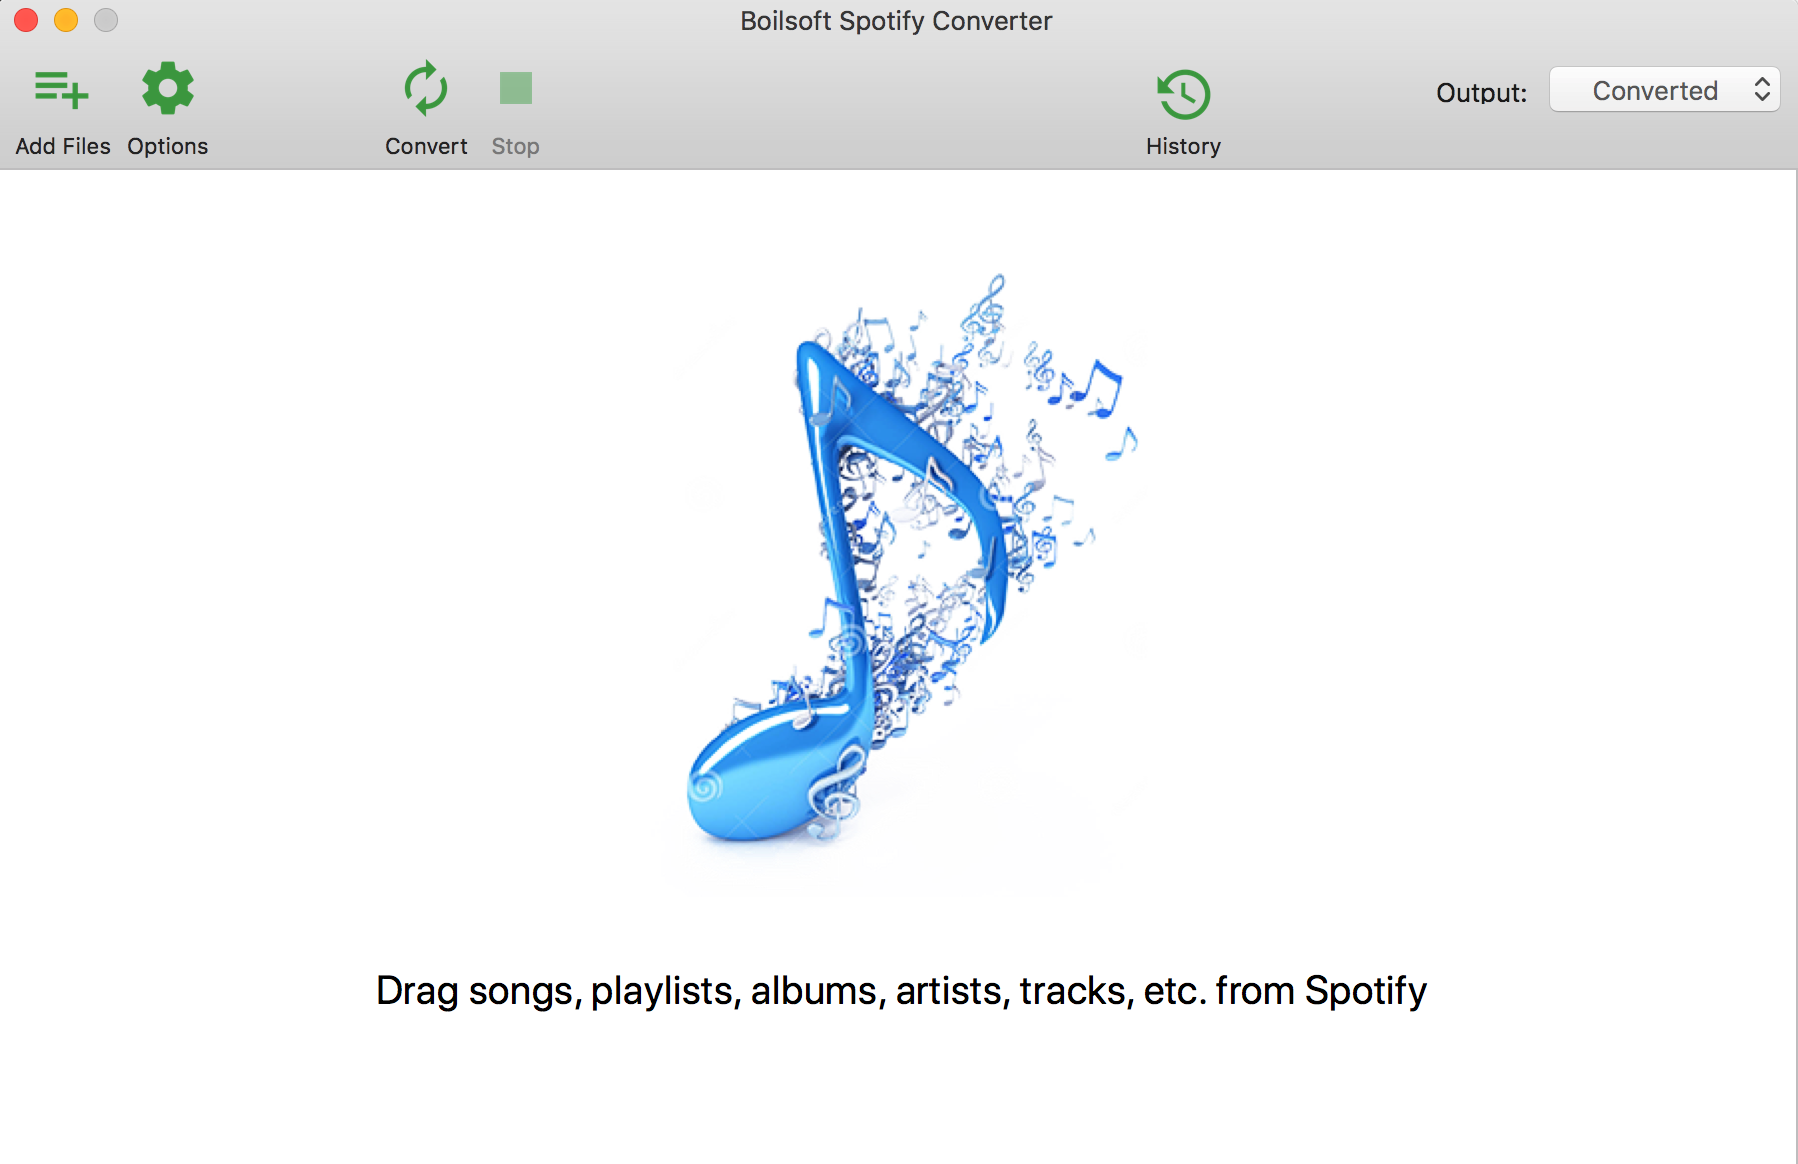 How to download music from Spotify: 2 methods